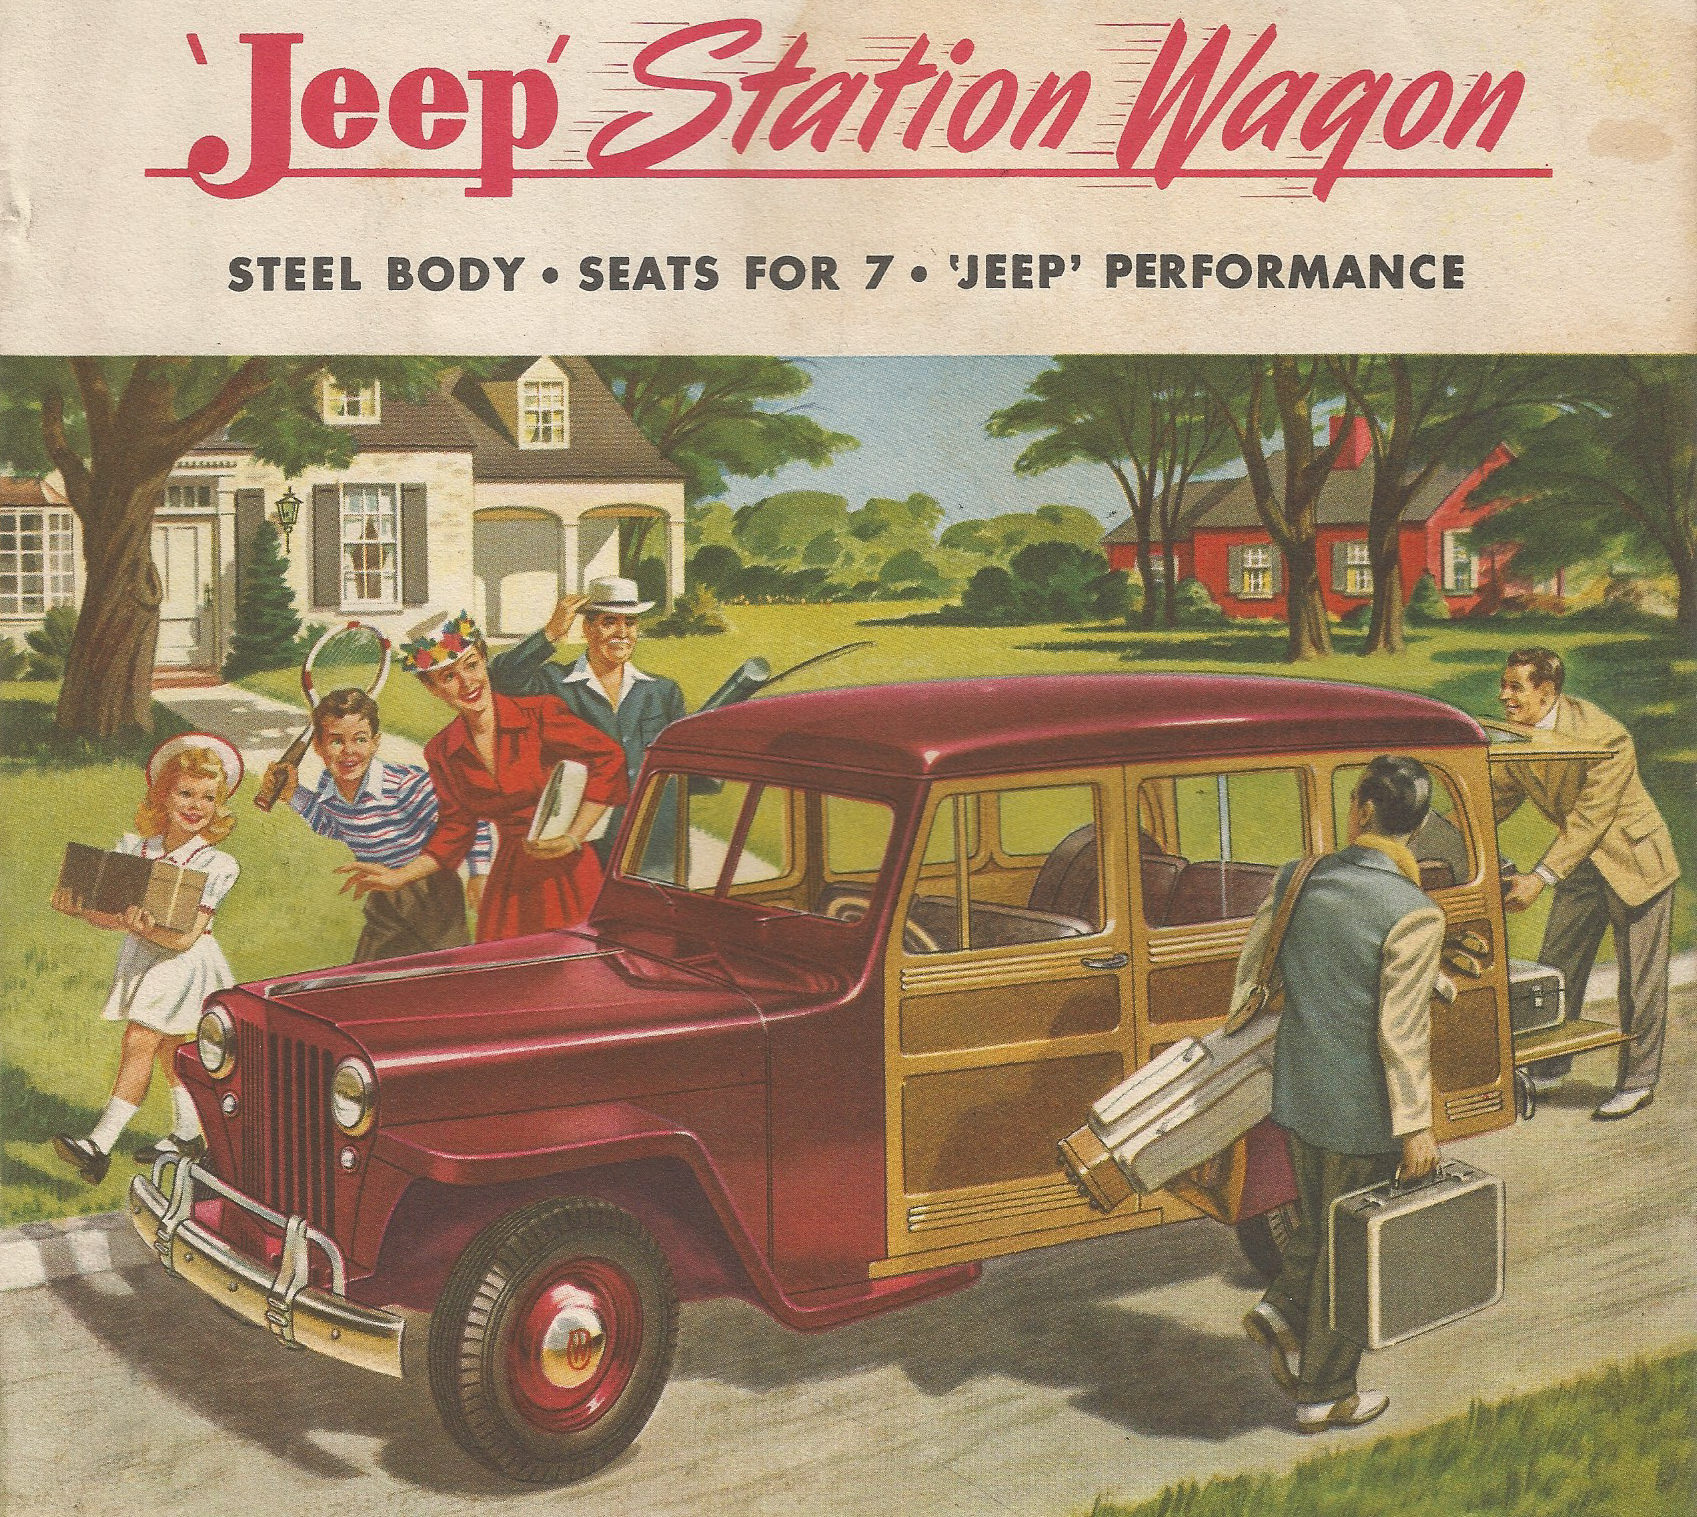 Model Jeep Station Wagon and Specifications